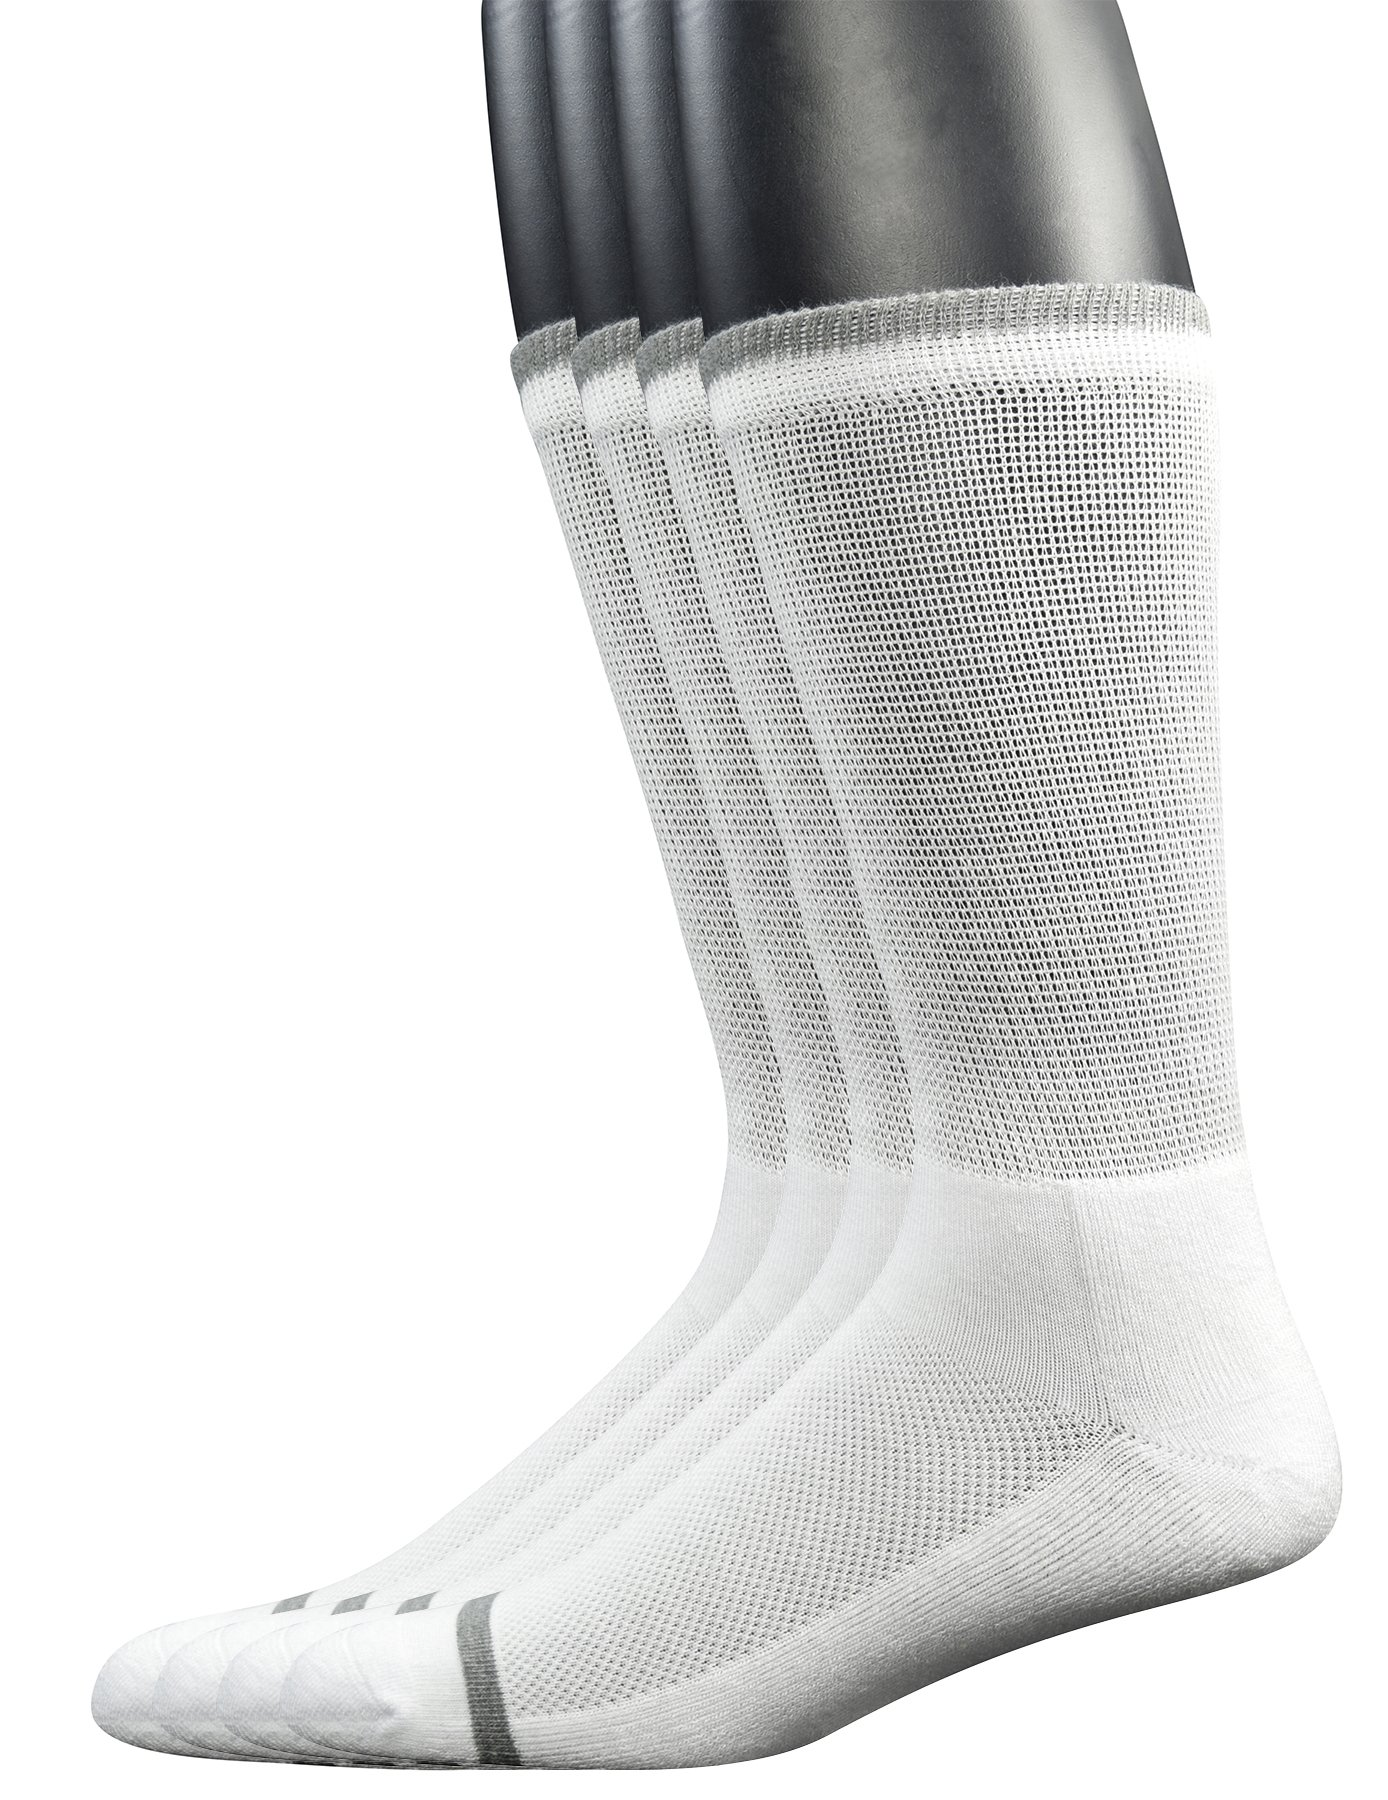 Yomandamor Men's 4 Pairs Bamboo Diabetic Crew Socks with Seamless Toe and Cushion Sole by Yomandamor